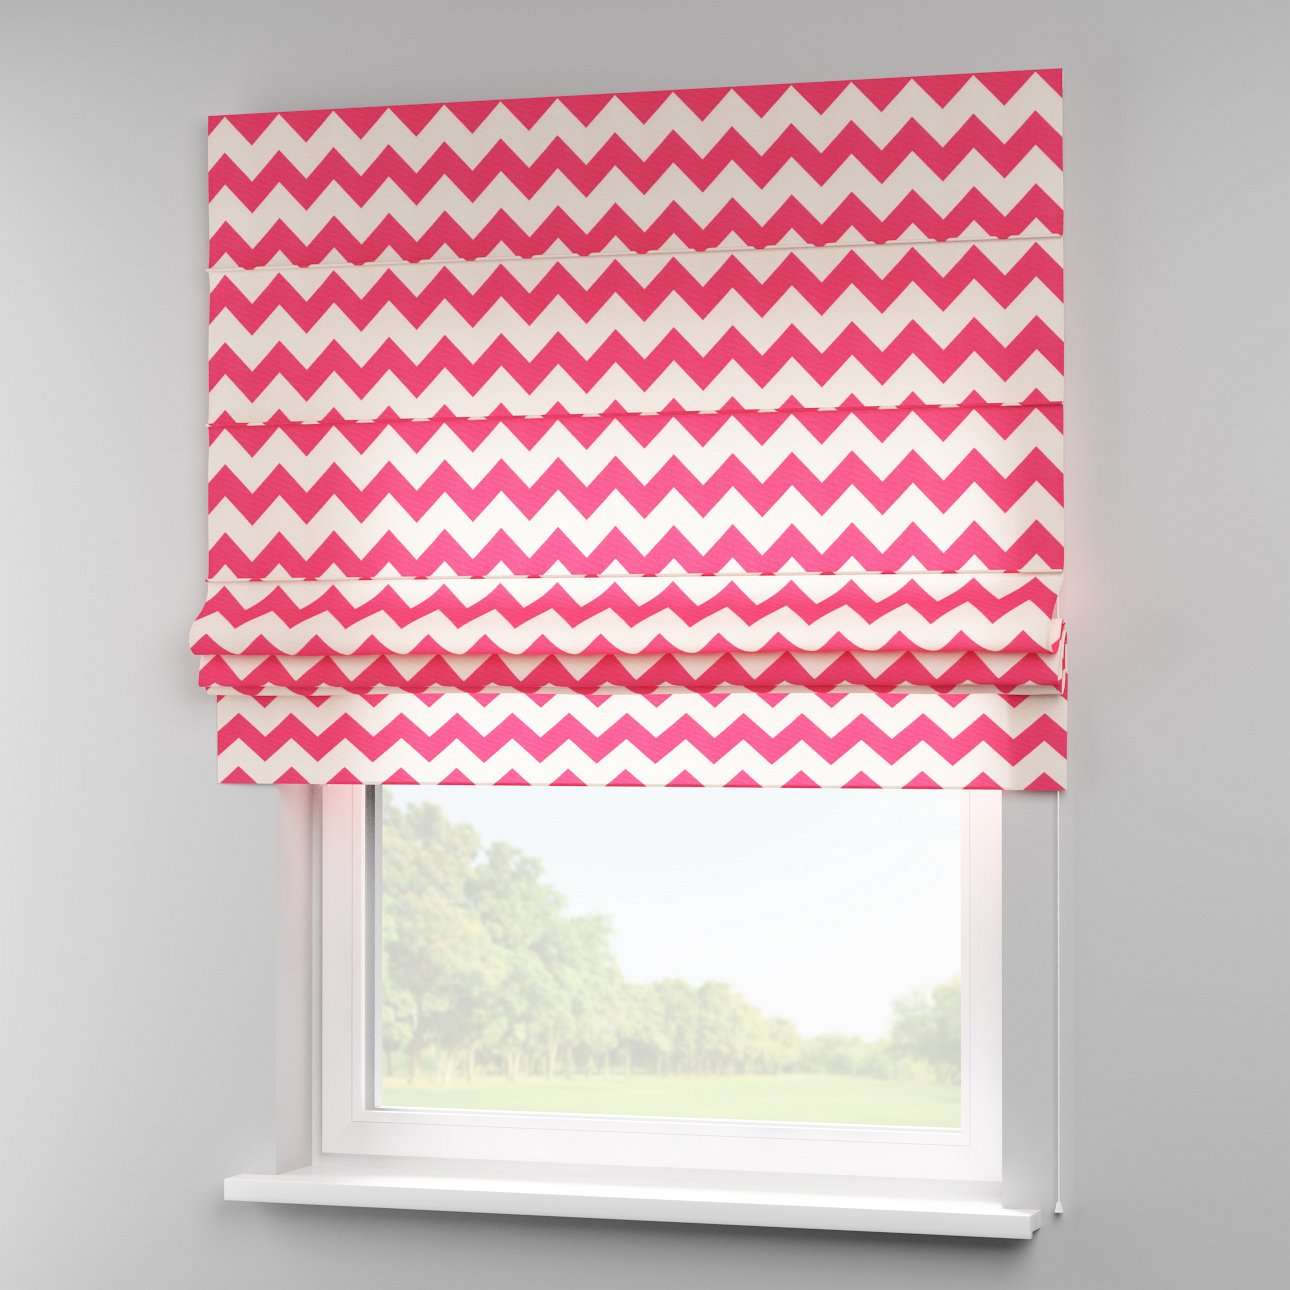 Padva roman blind  80 × 170 cm (31.5 × 67 inch) in collection Comics/Geometrical, fabric: 135-00